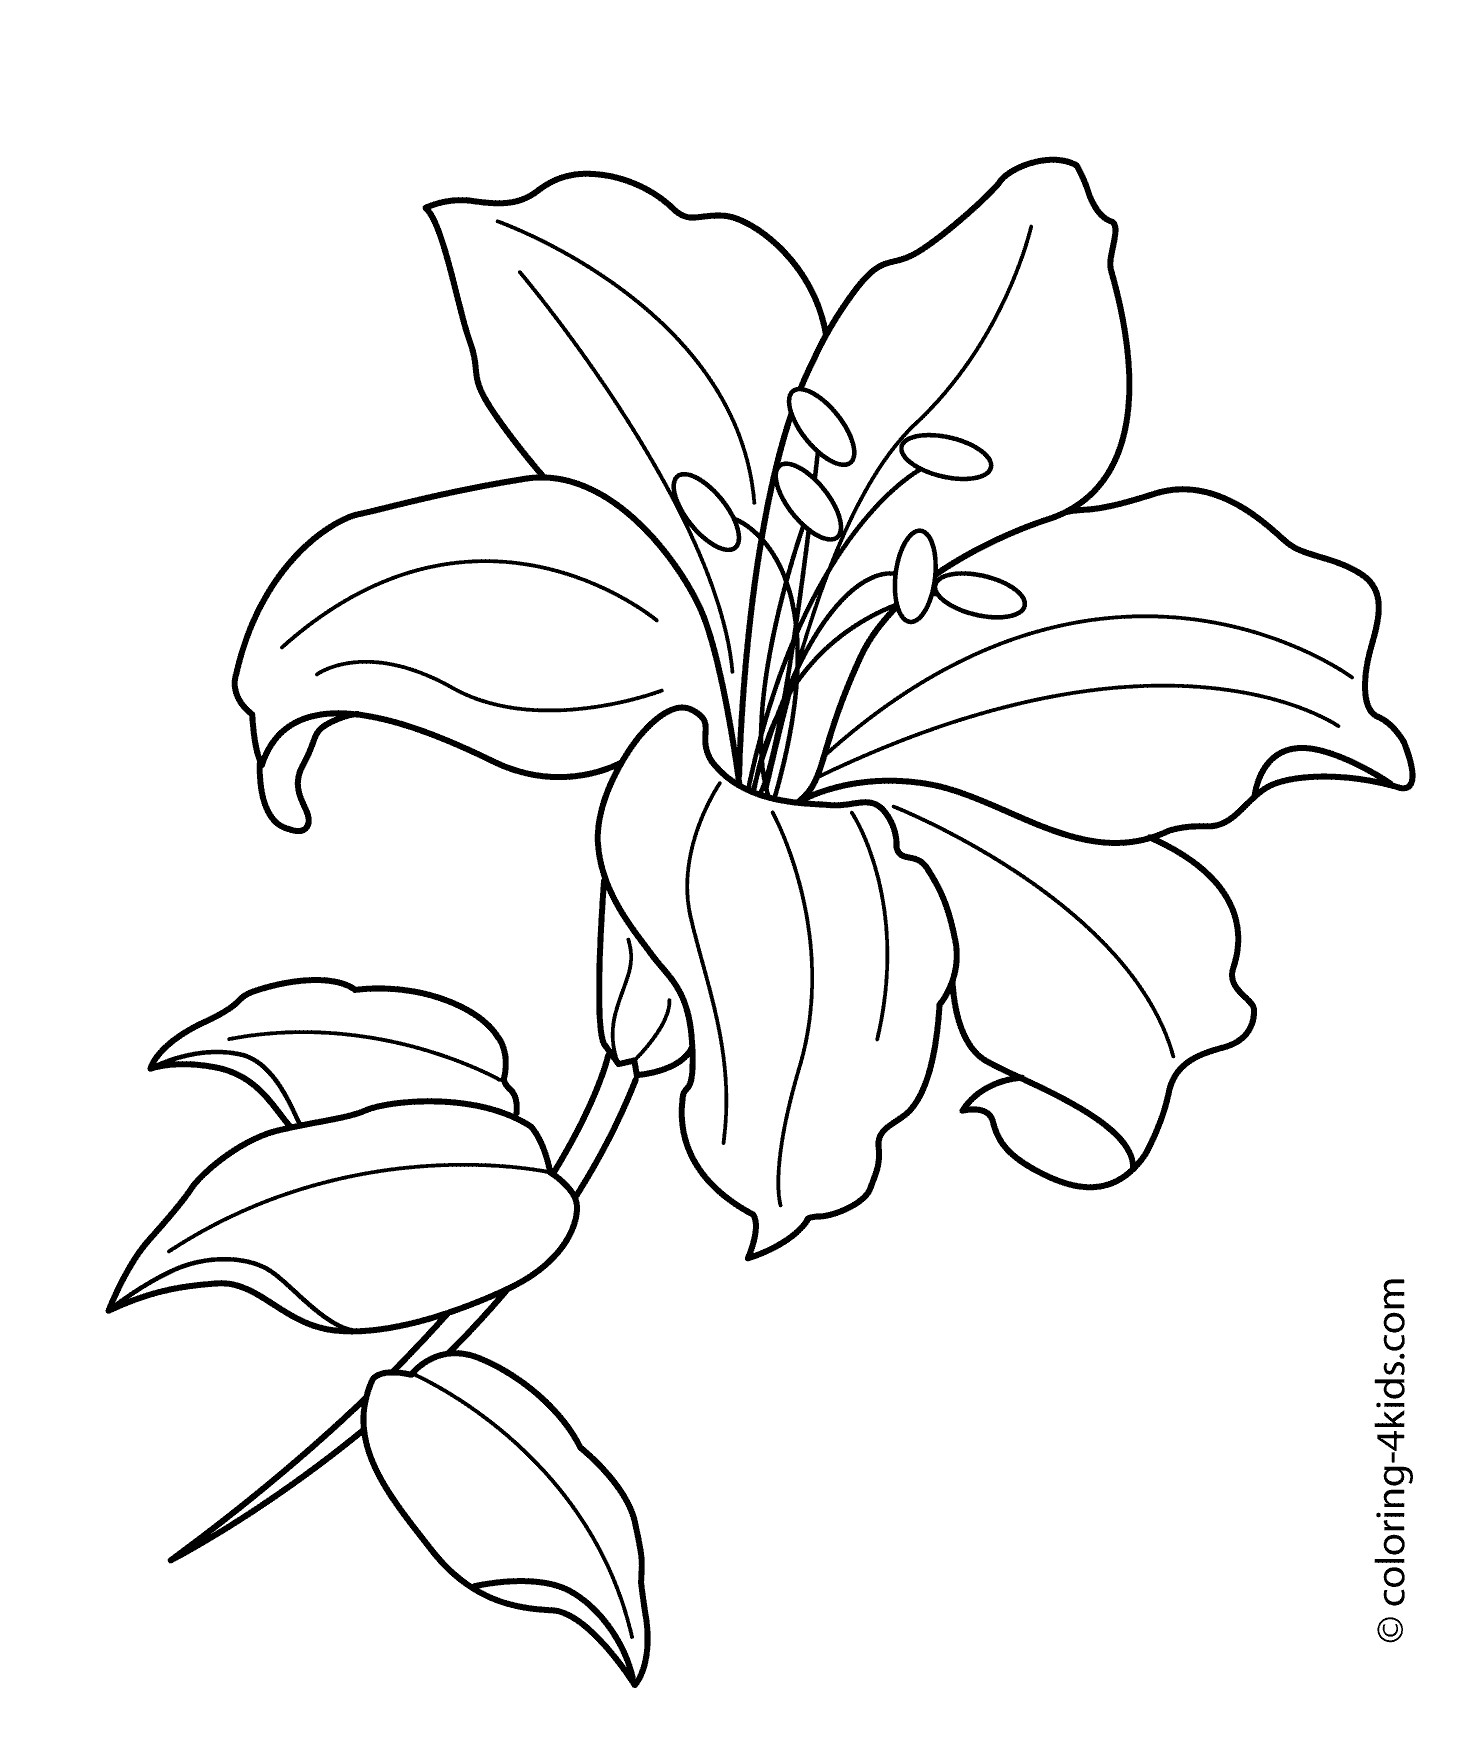 1483x1764 Best Of Coloring Pages Easter Flowers